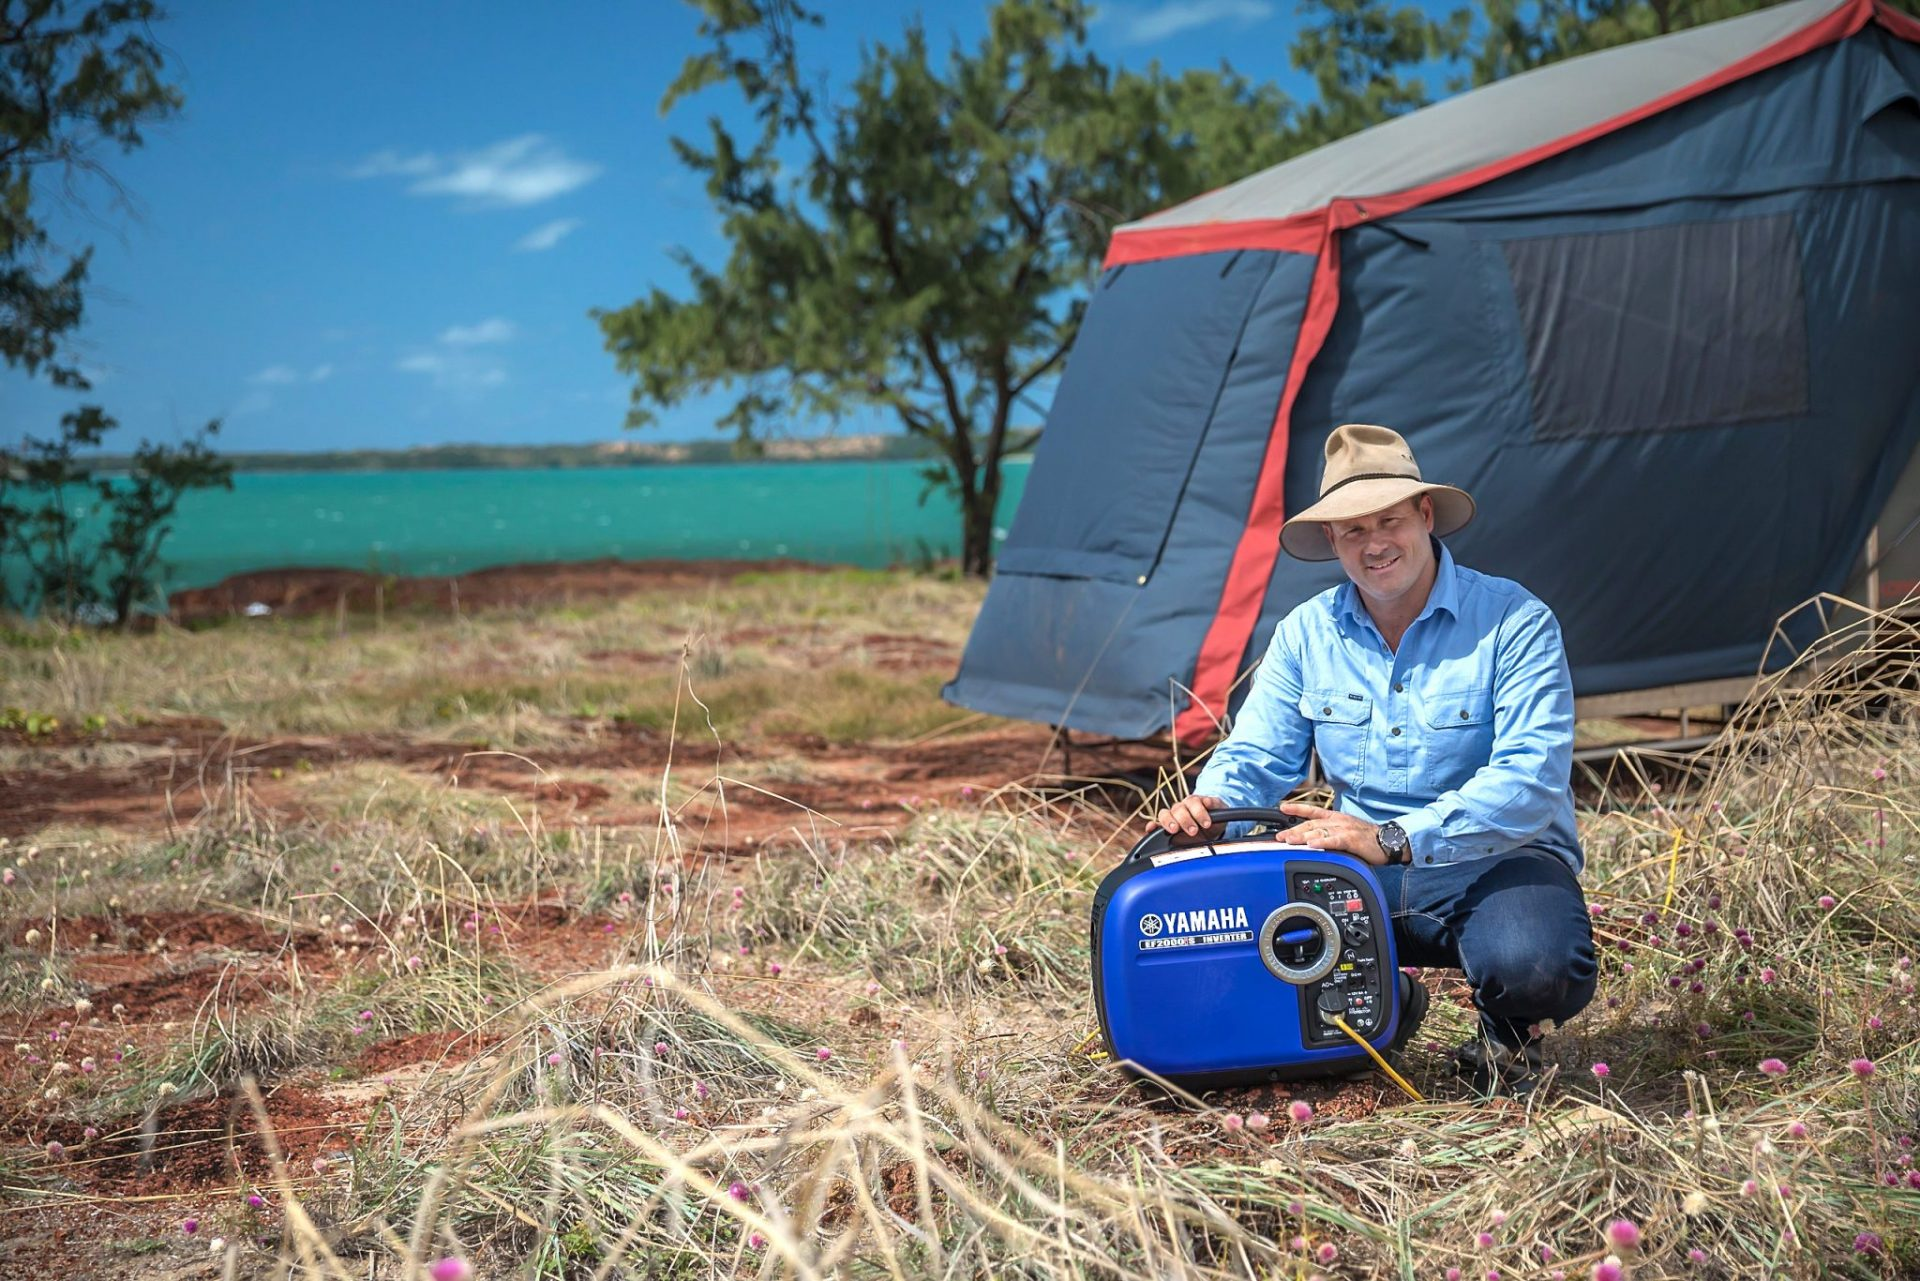 Pat Callinan camping with a Yamaha EF2000iS generator